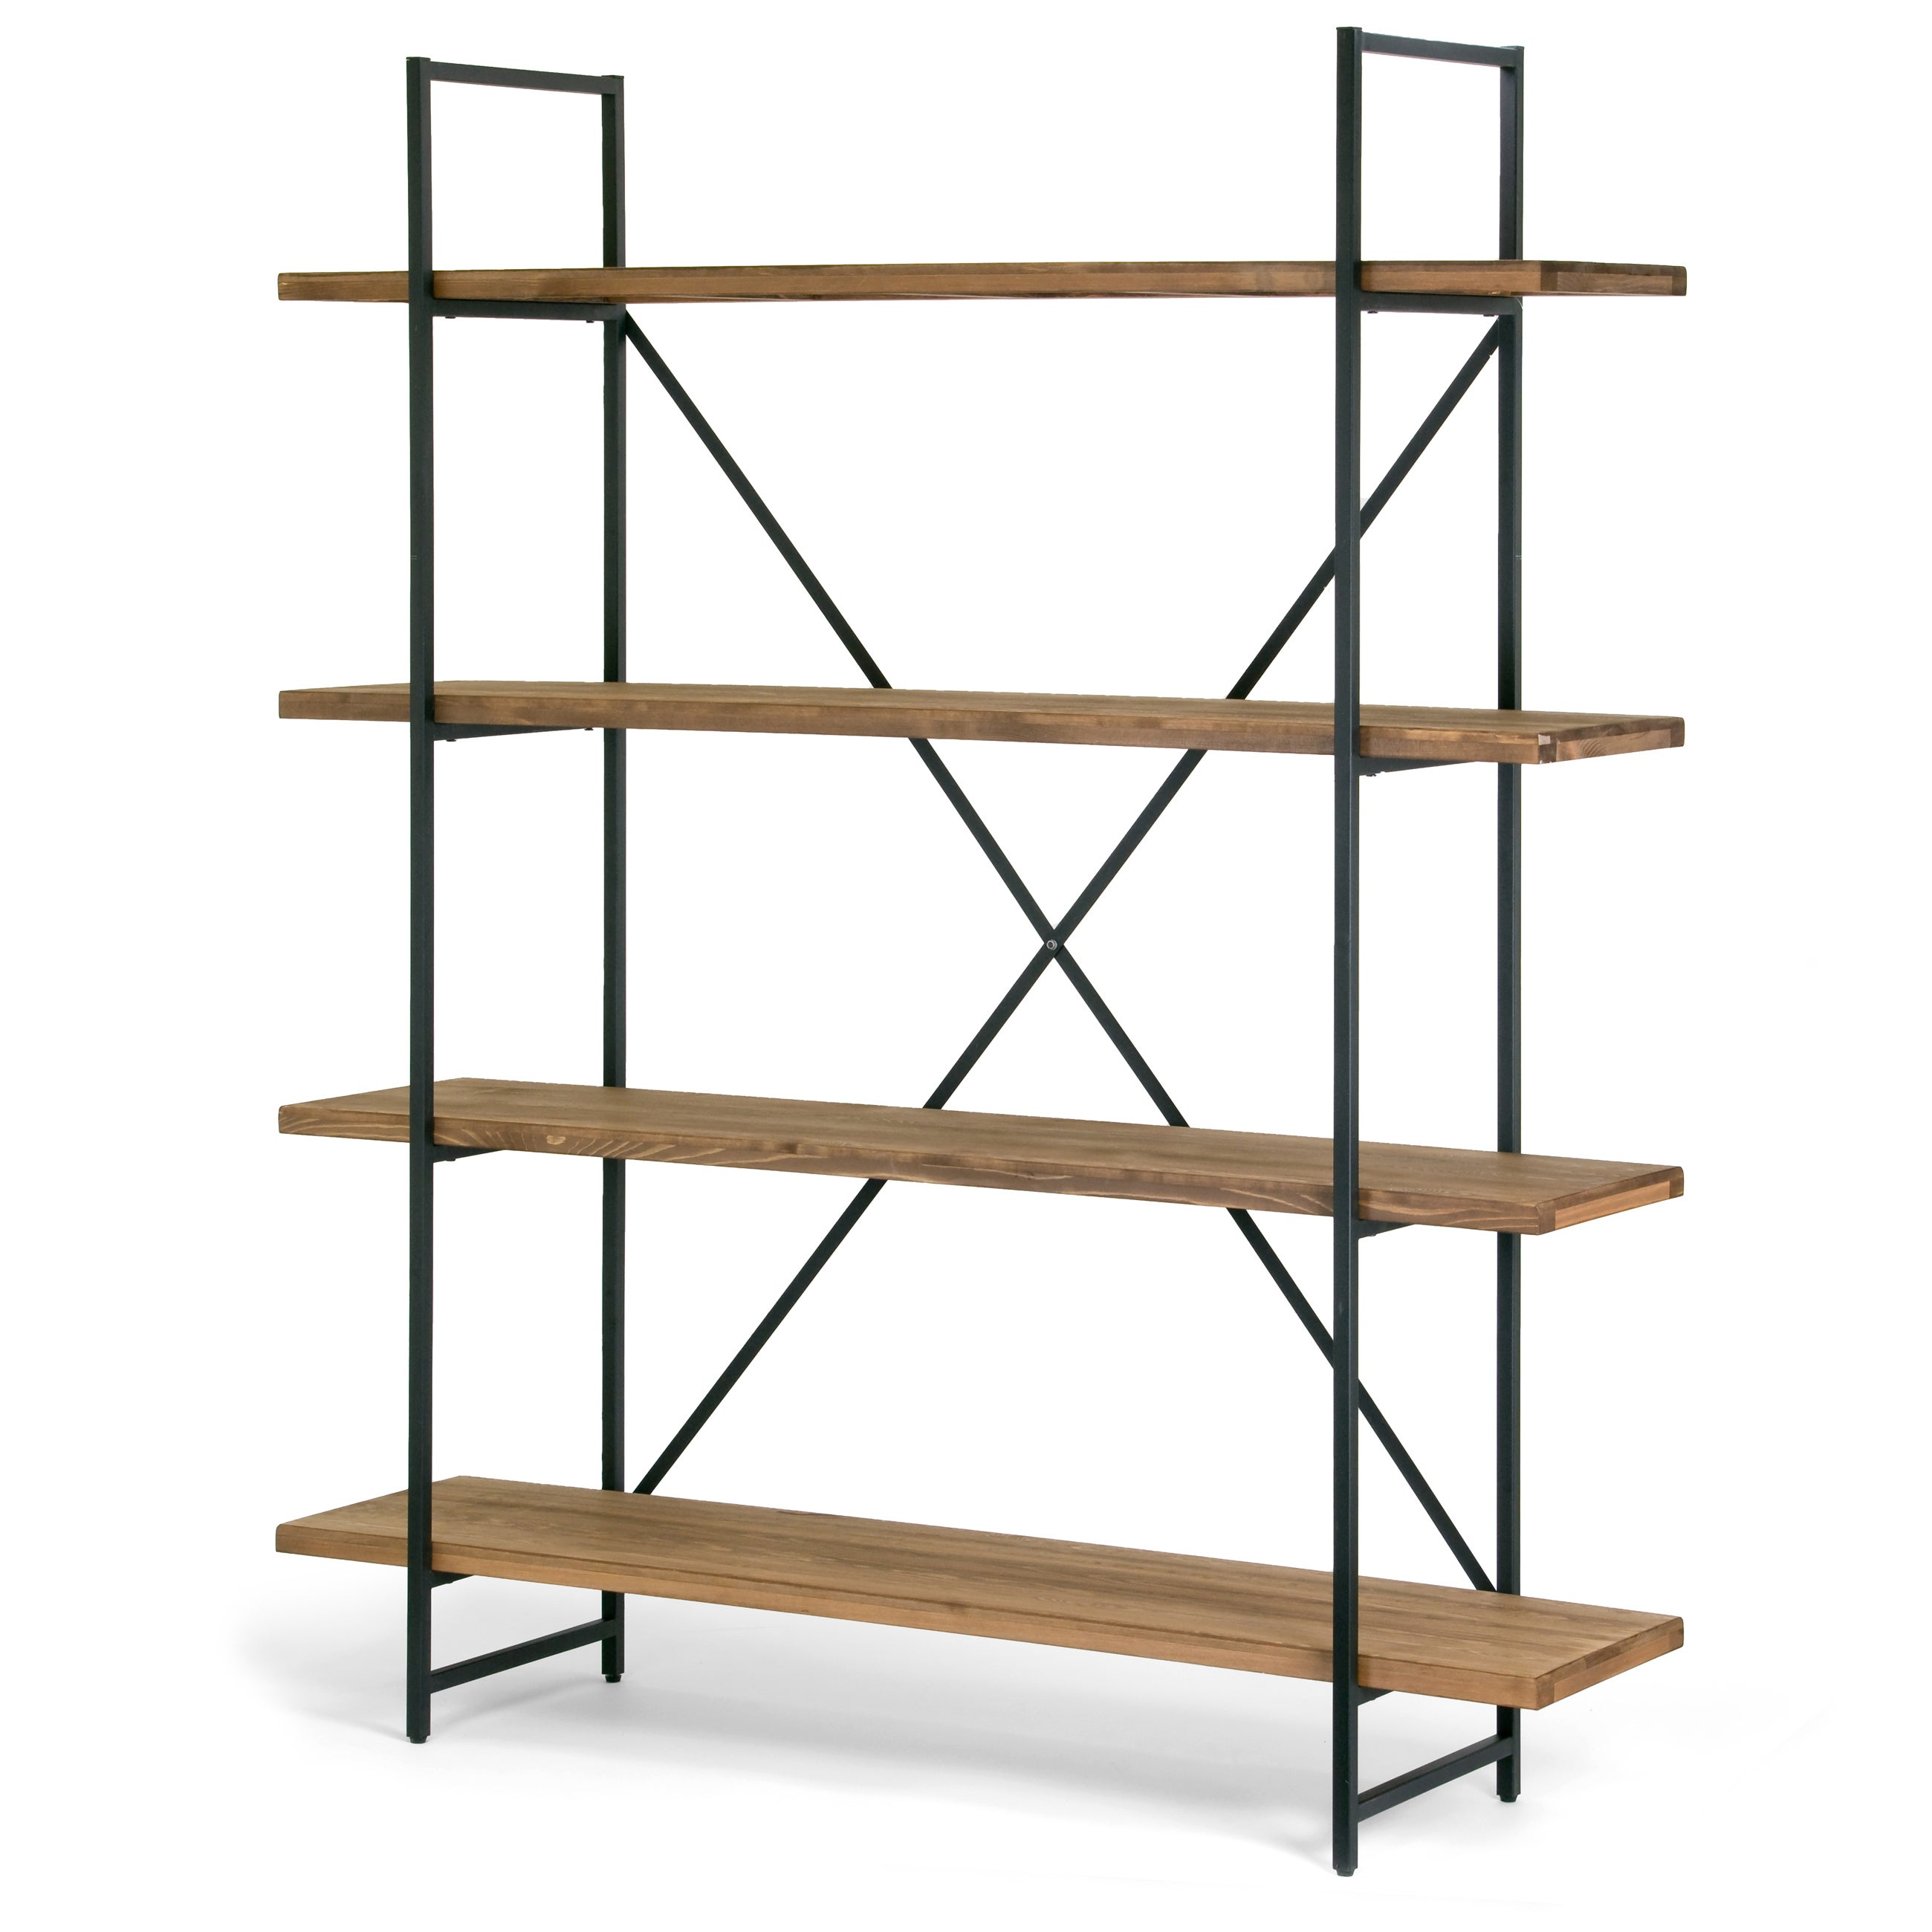 Shop ailis brown wood and metal 75 inch 4 shelf etagere bookcase free shipping today overstock com 13288403